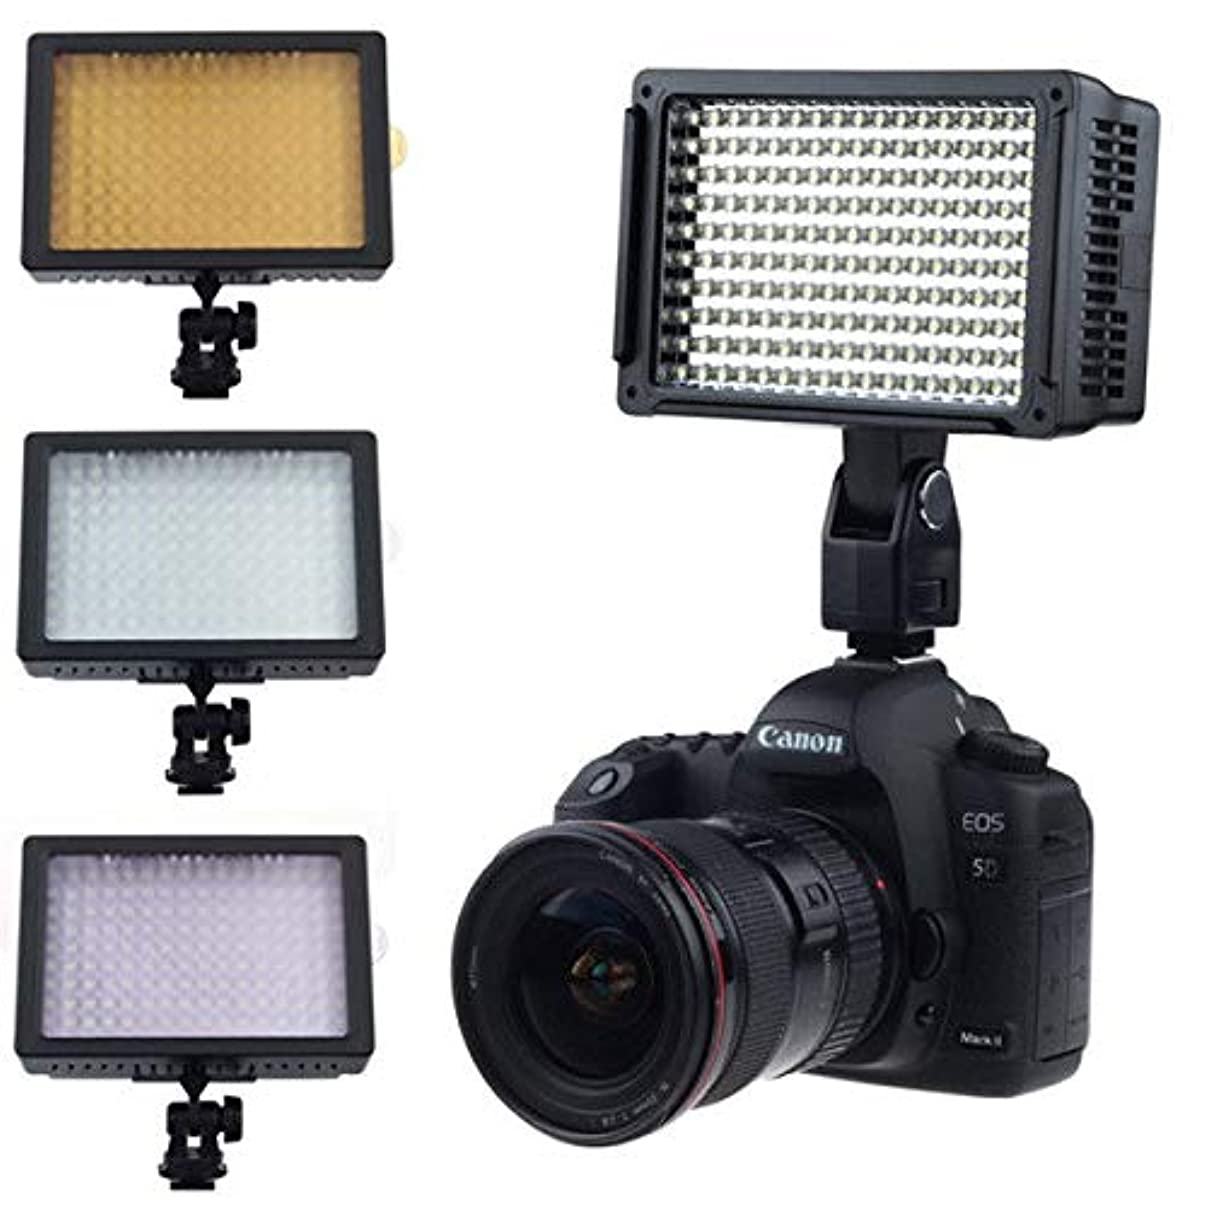 Runshuangyu 160 LED CN-160 Dimmable Ultra High Power Panel Hot Shoe Video Camcorder Lamp Light Photo Studio Lighting + Soft Diffuser + 3200k Filter fits to Canon Nikon Sony Panasonic Olympus Camera